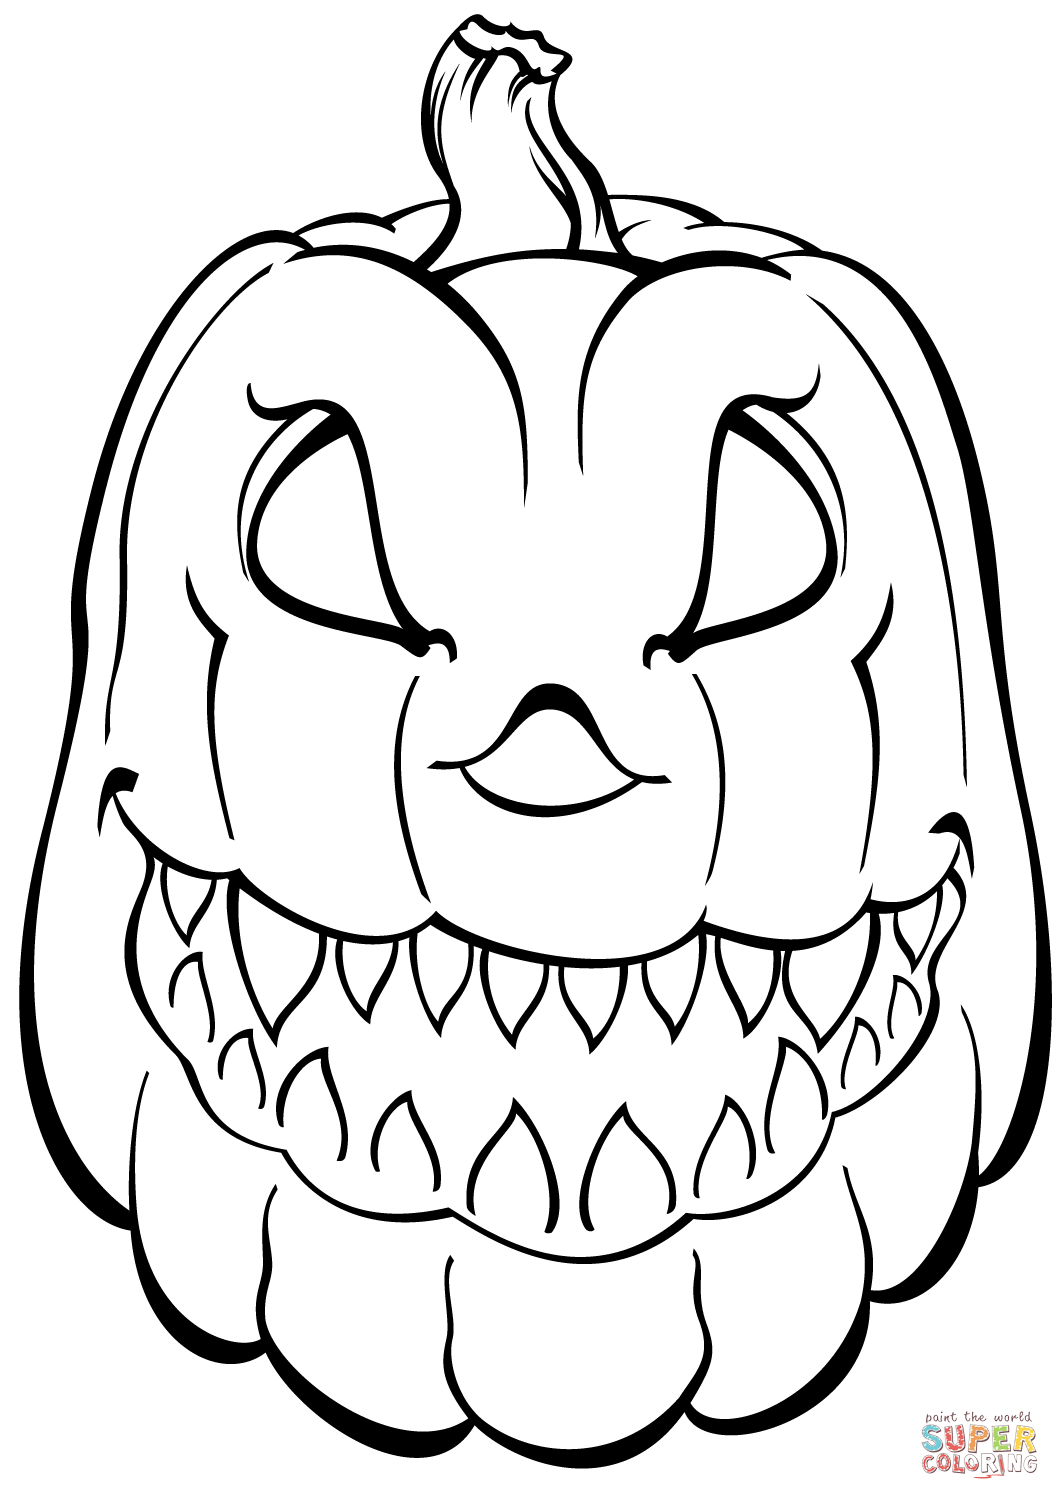 1060x1500 Simple Pumkin Coloring Pages Free Printable Pumpkin For Kids